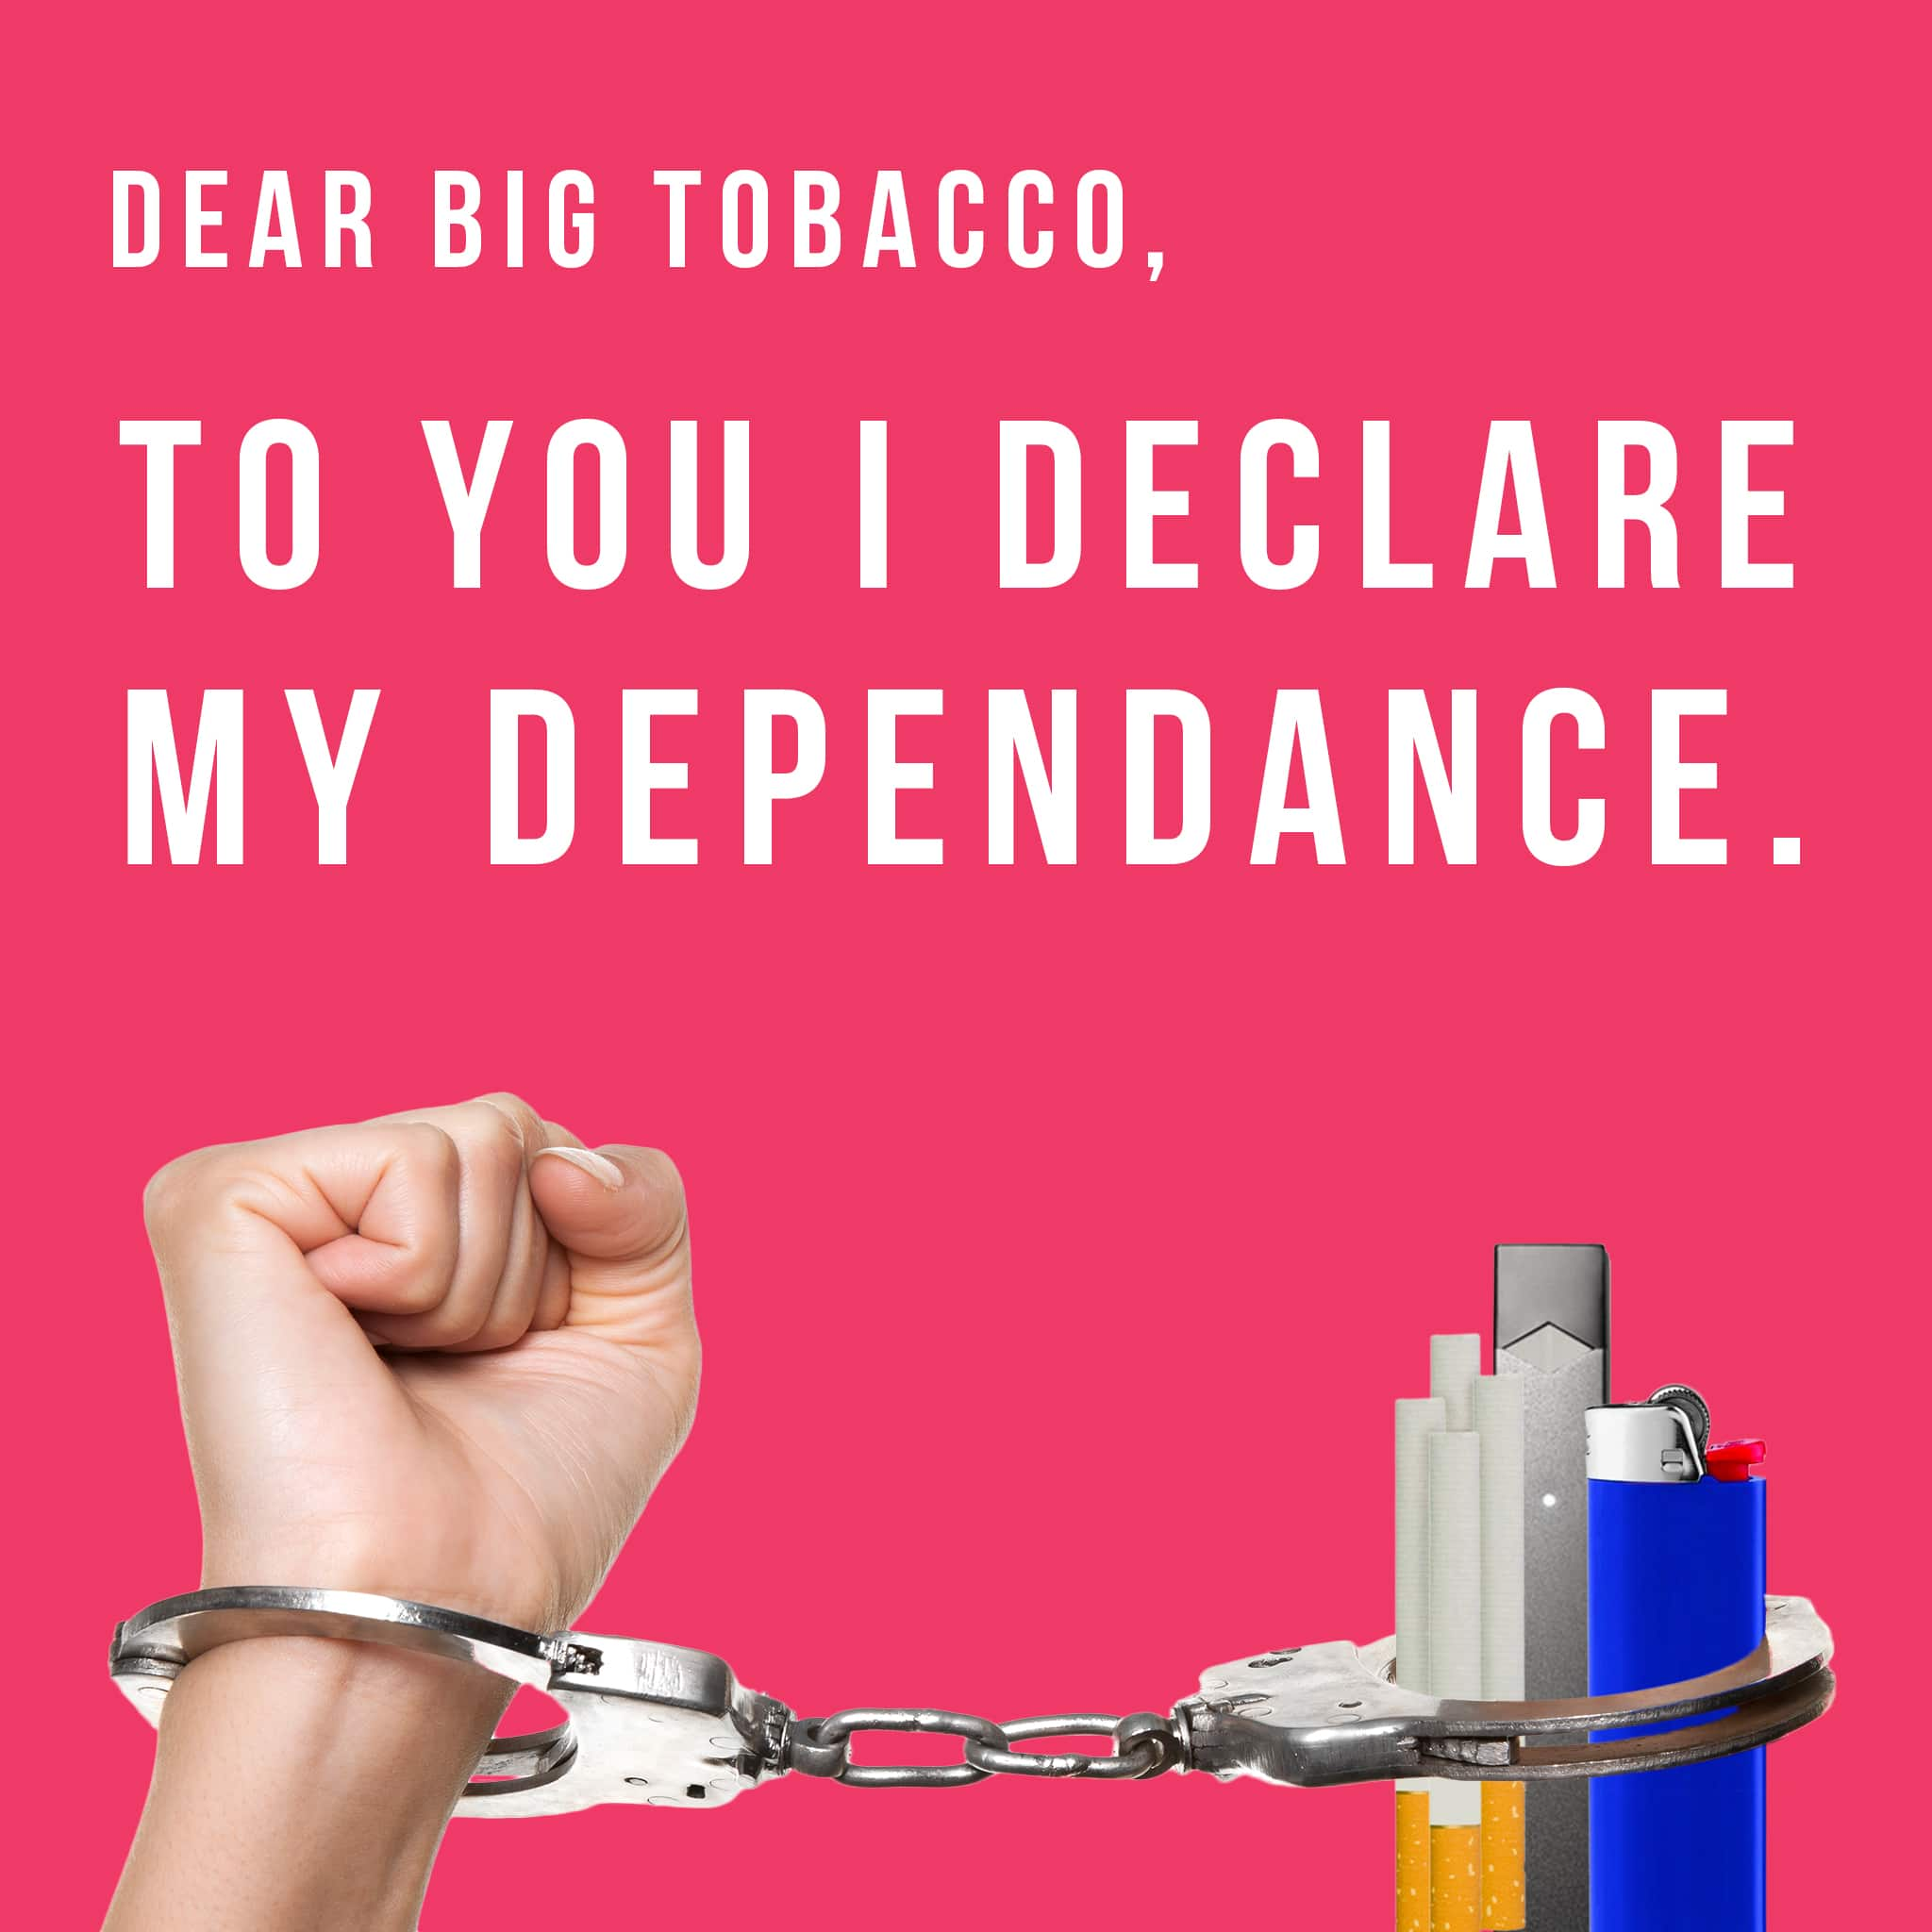 Dear big tobacco, to you I declare my dependence. A hand handcuffed to vaping products.